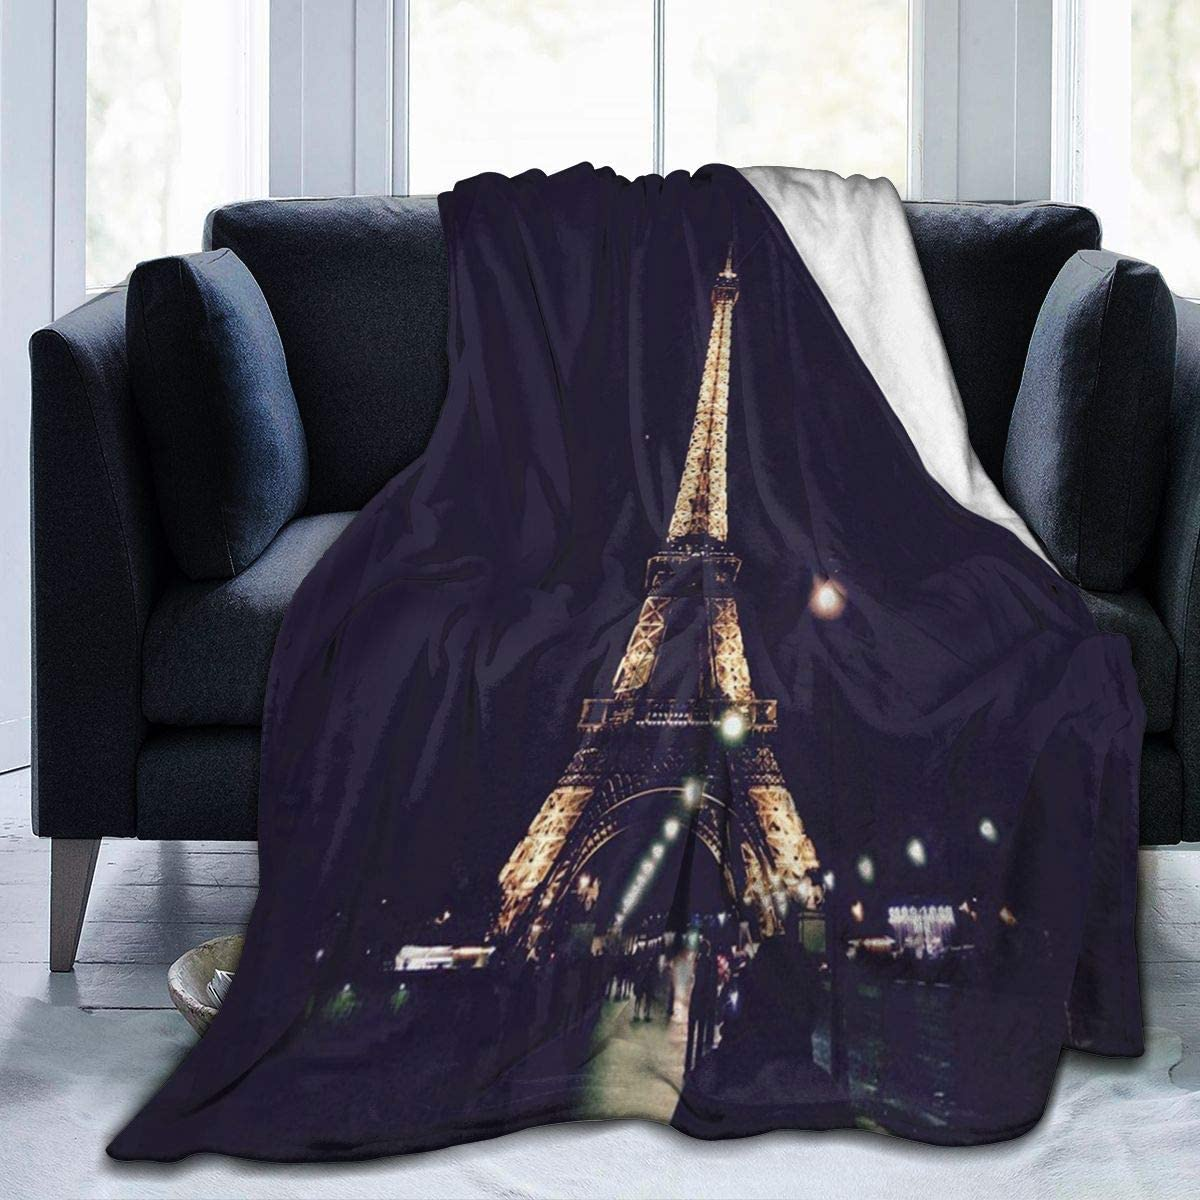 Fleece Plush Throw Blanket Comforter Night France Eiffel Tower Faux Fur Soft Cozy Warm Fluffy Lightweight Microfiber Fuzzy Blanket for Bed Couch Sofa Chair Fall Nap Travel Camp Picnic Clearance 50x60i